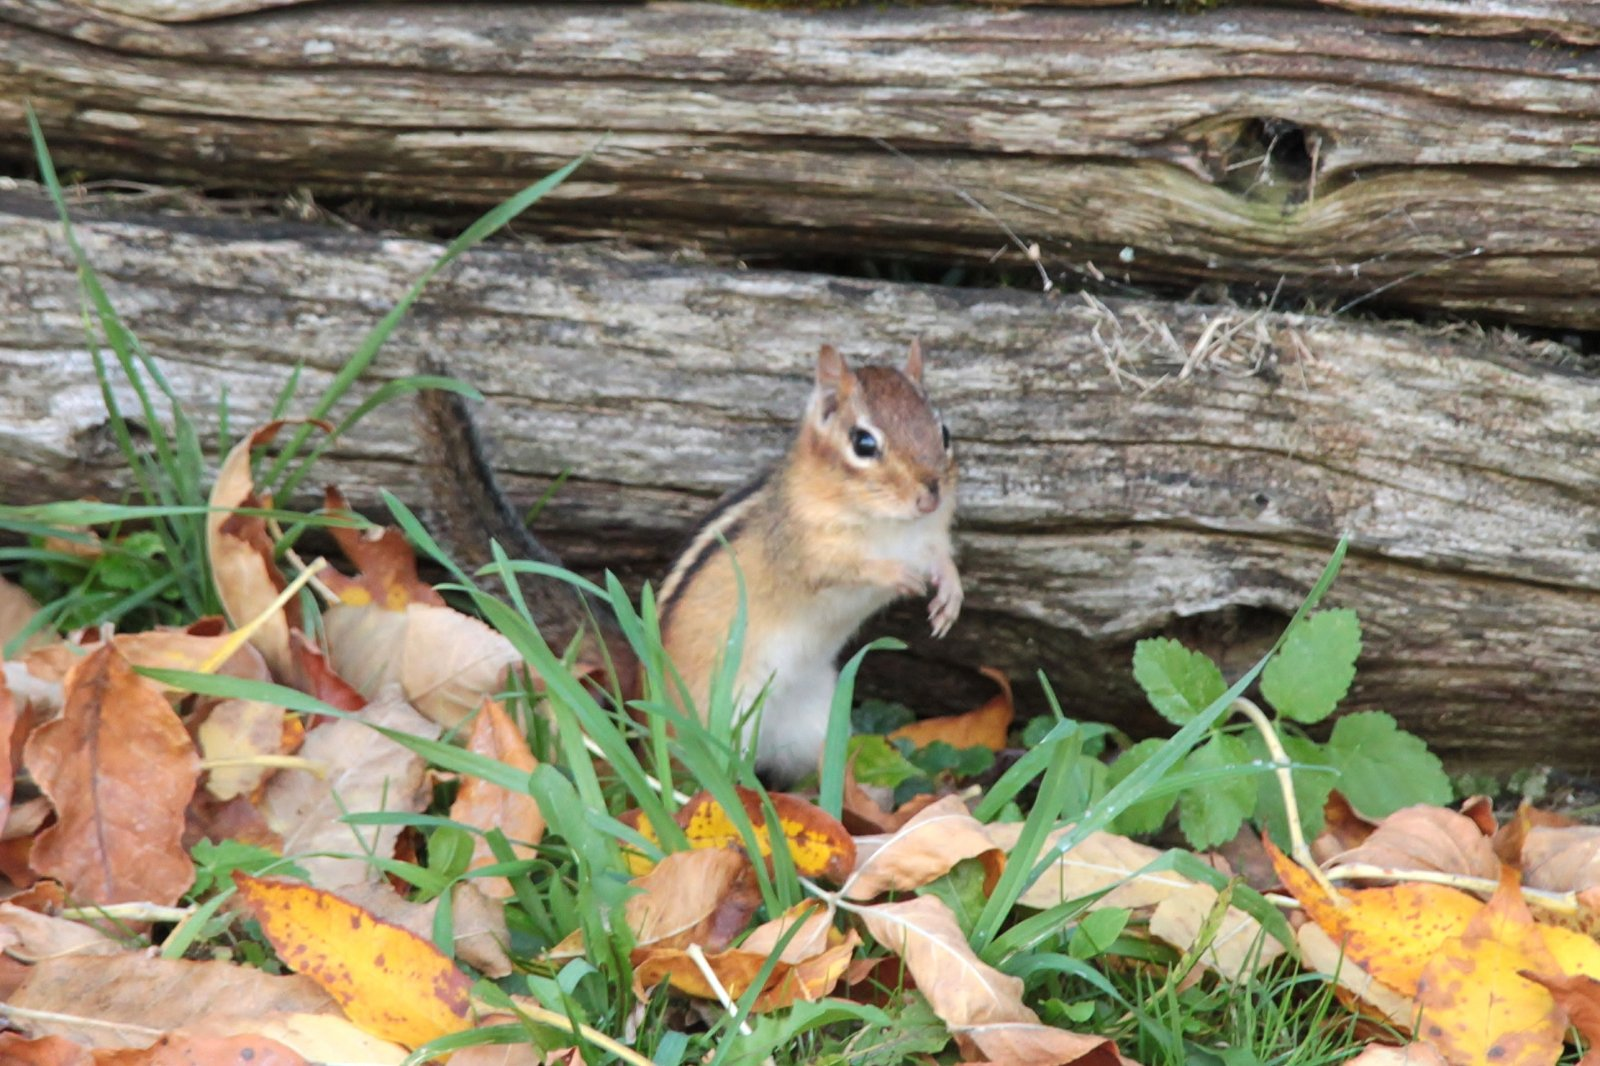 Even the chipmunk seemed to be enjoying the fall weather!